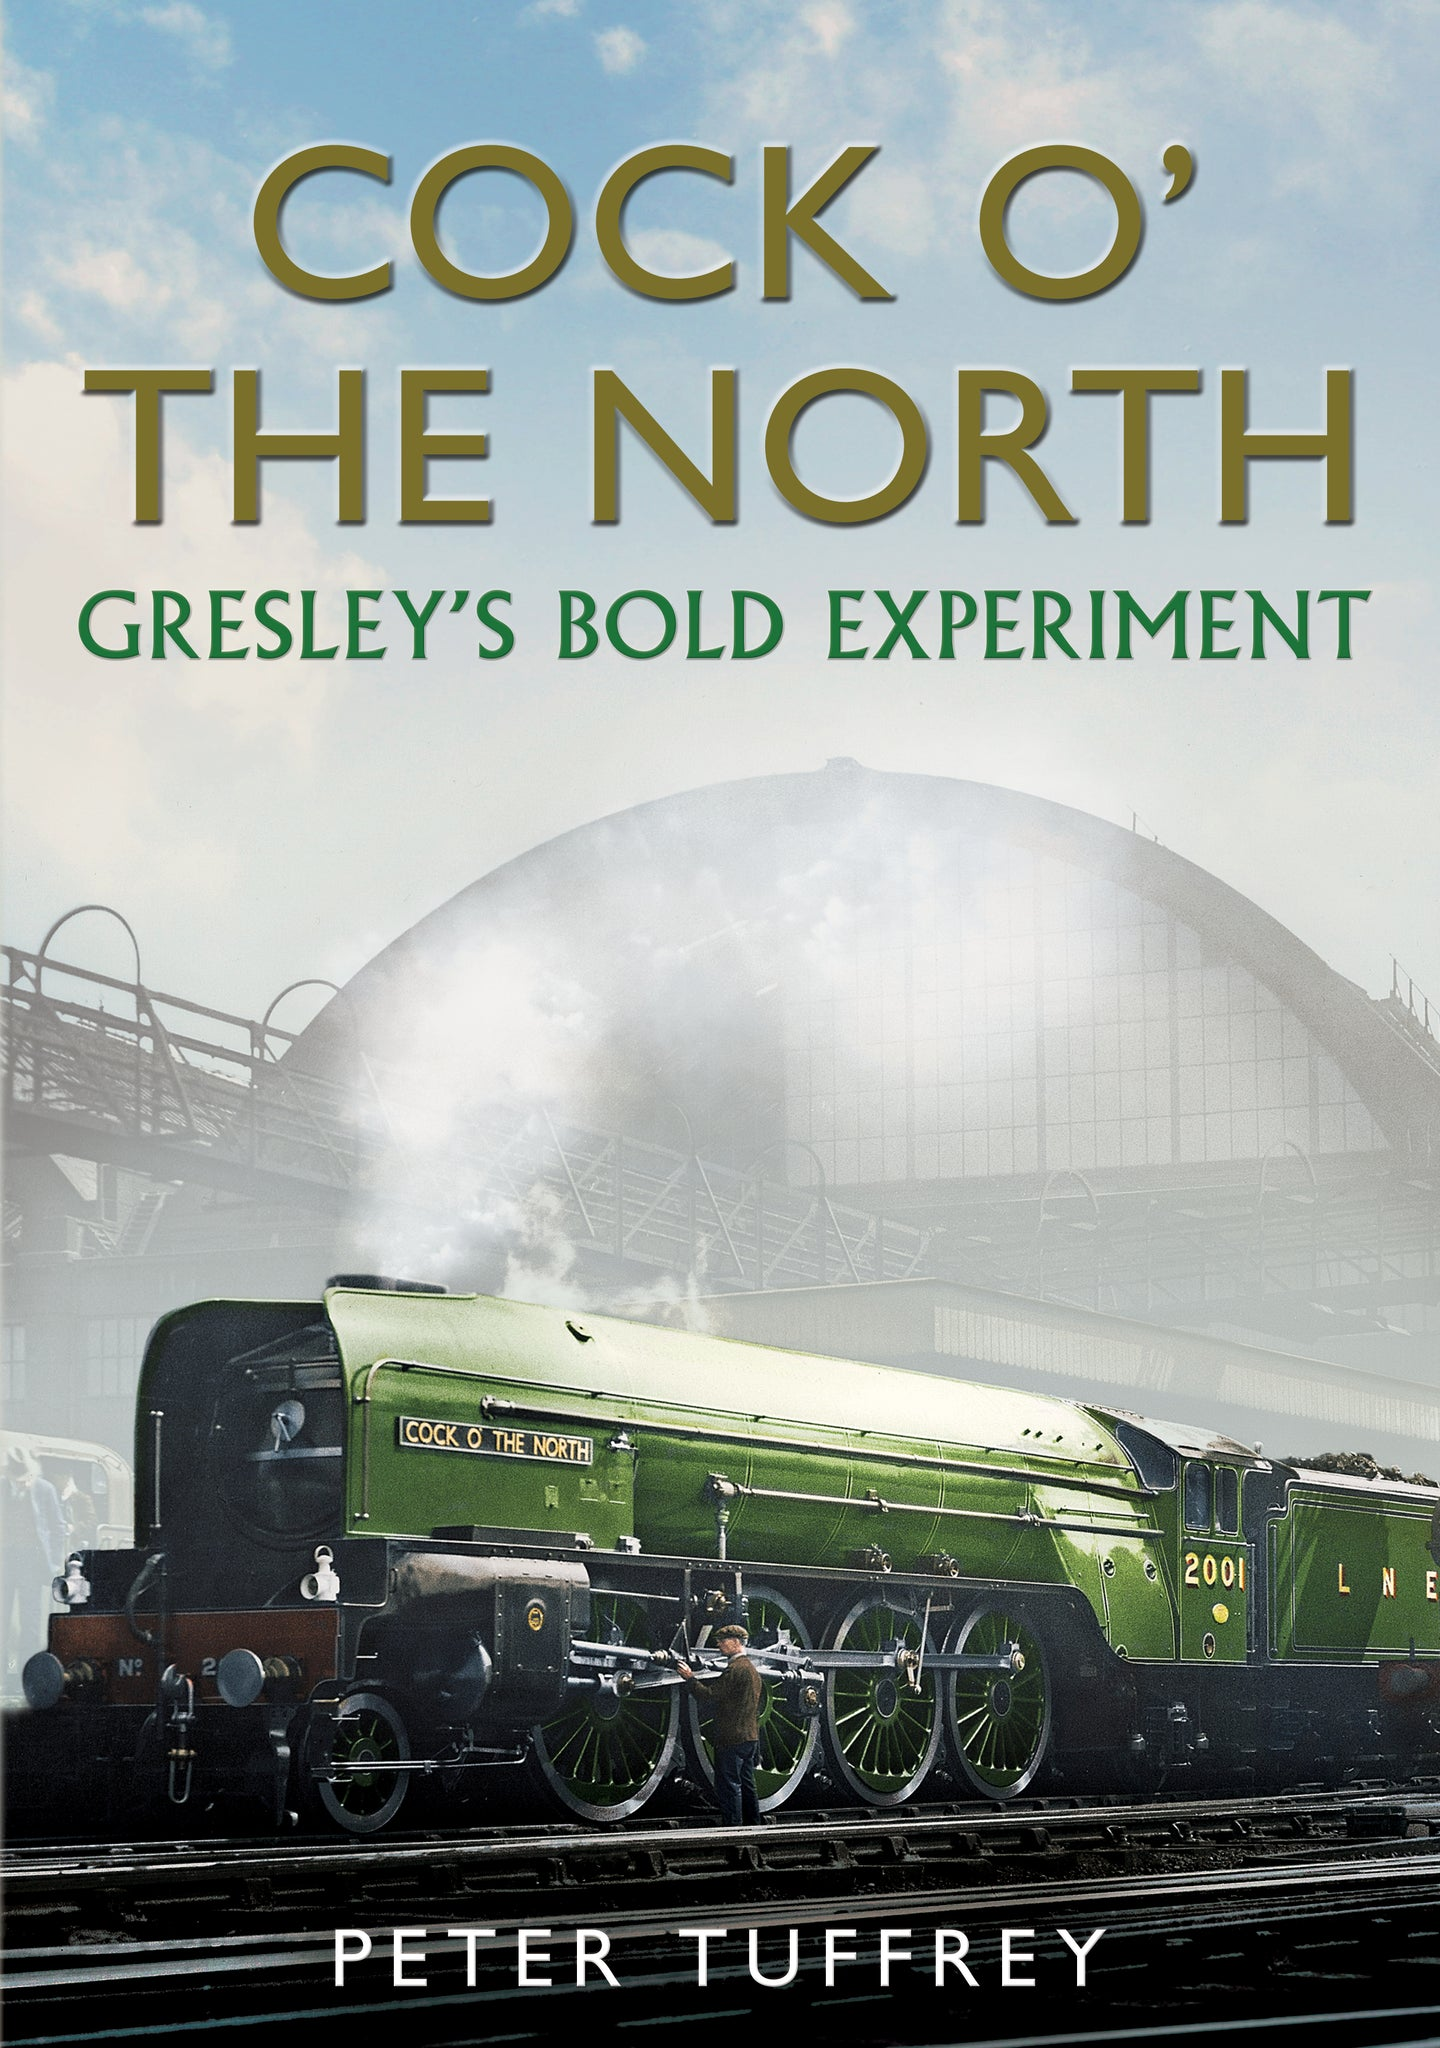 Cock o' the North: Gresley's Bold Experiment - published by Fonthill Media